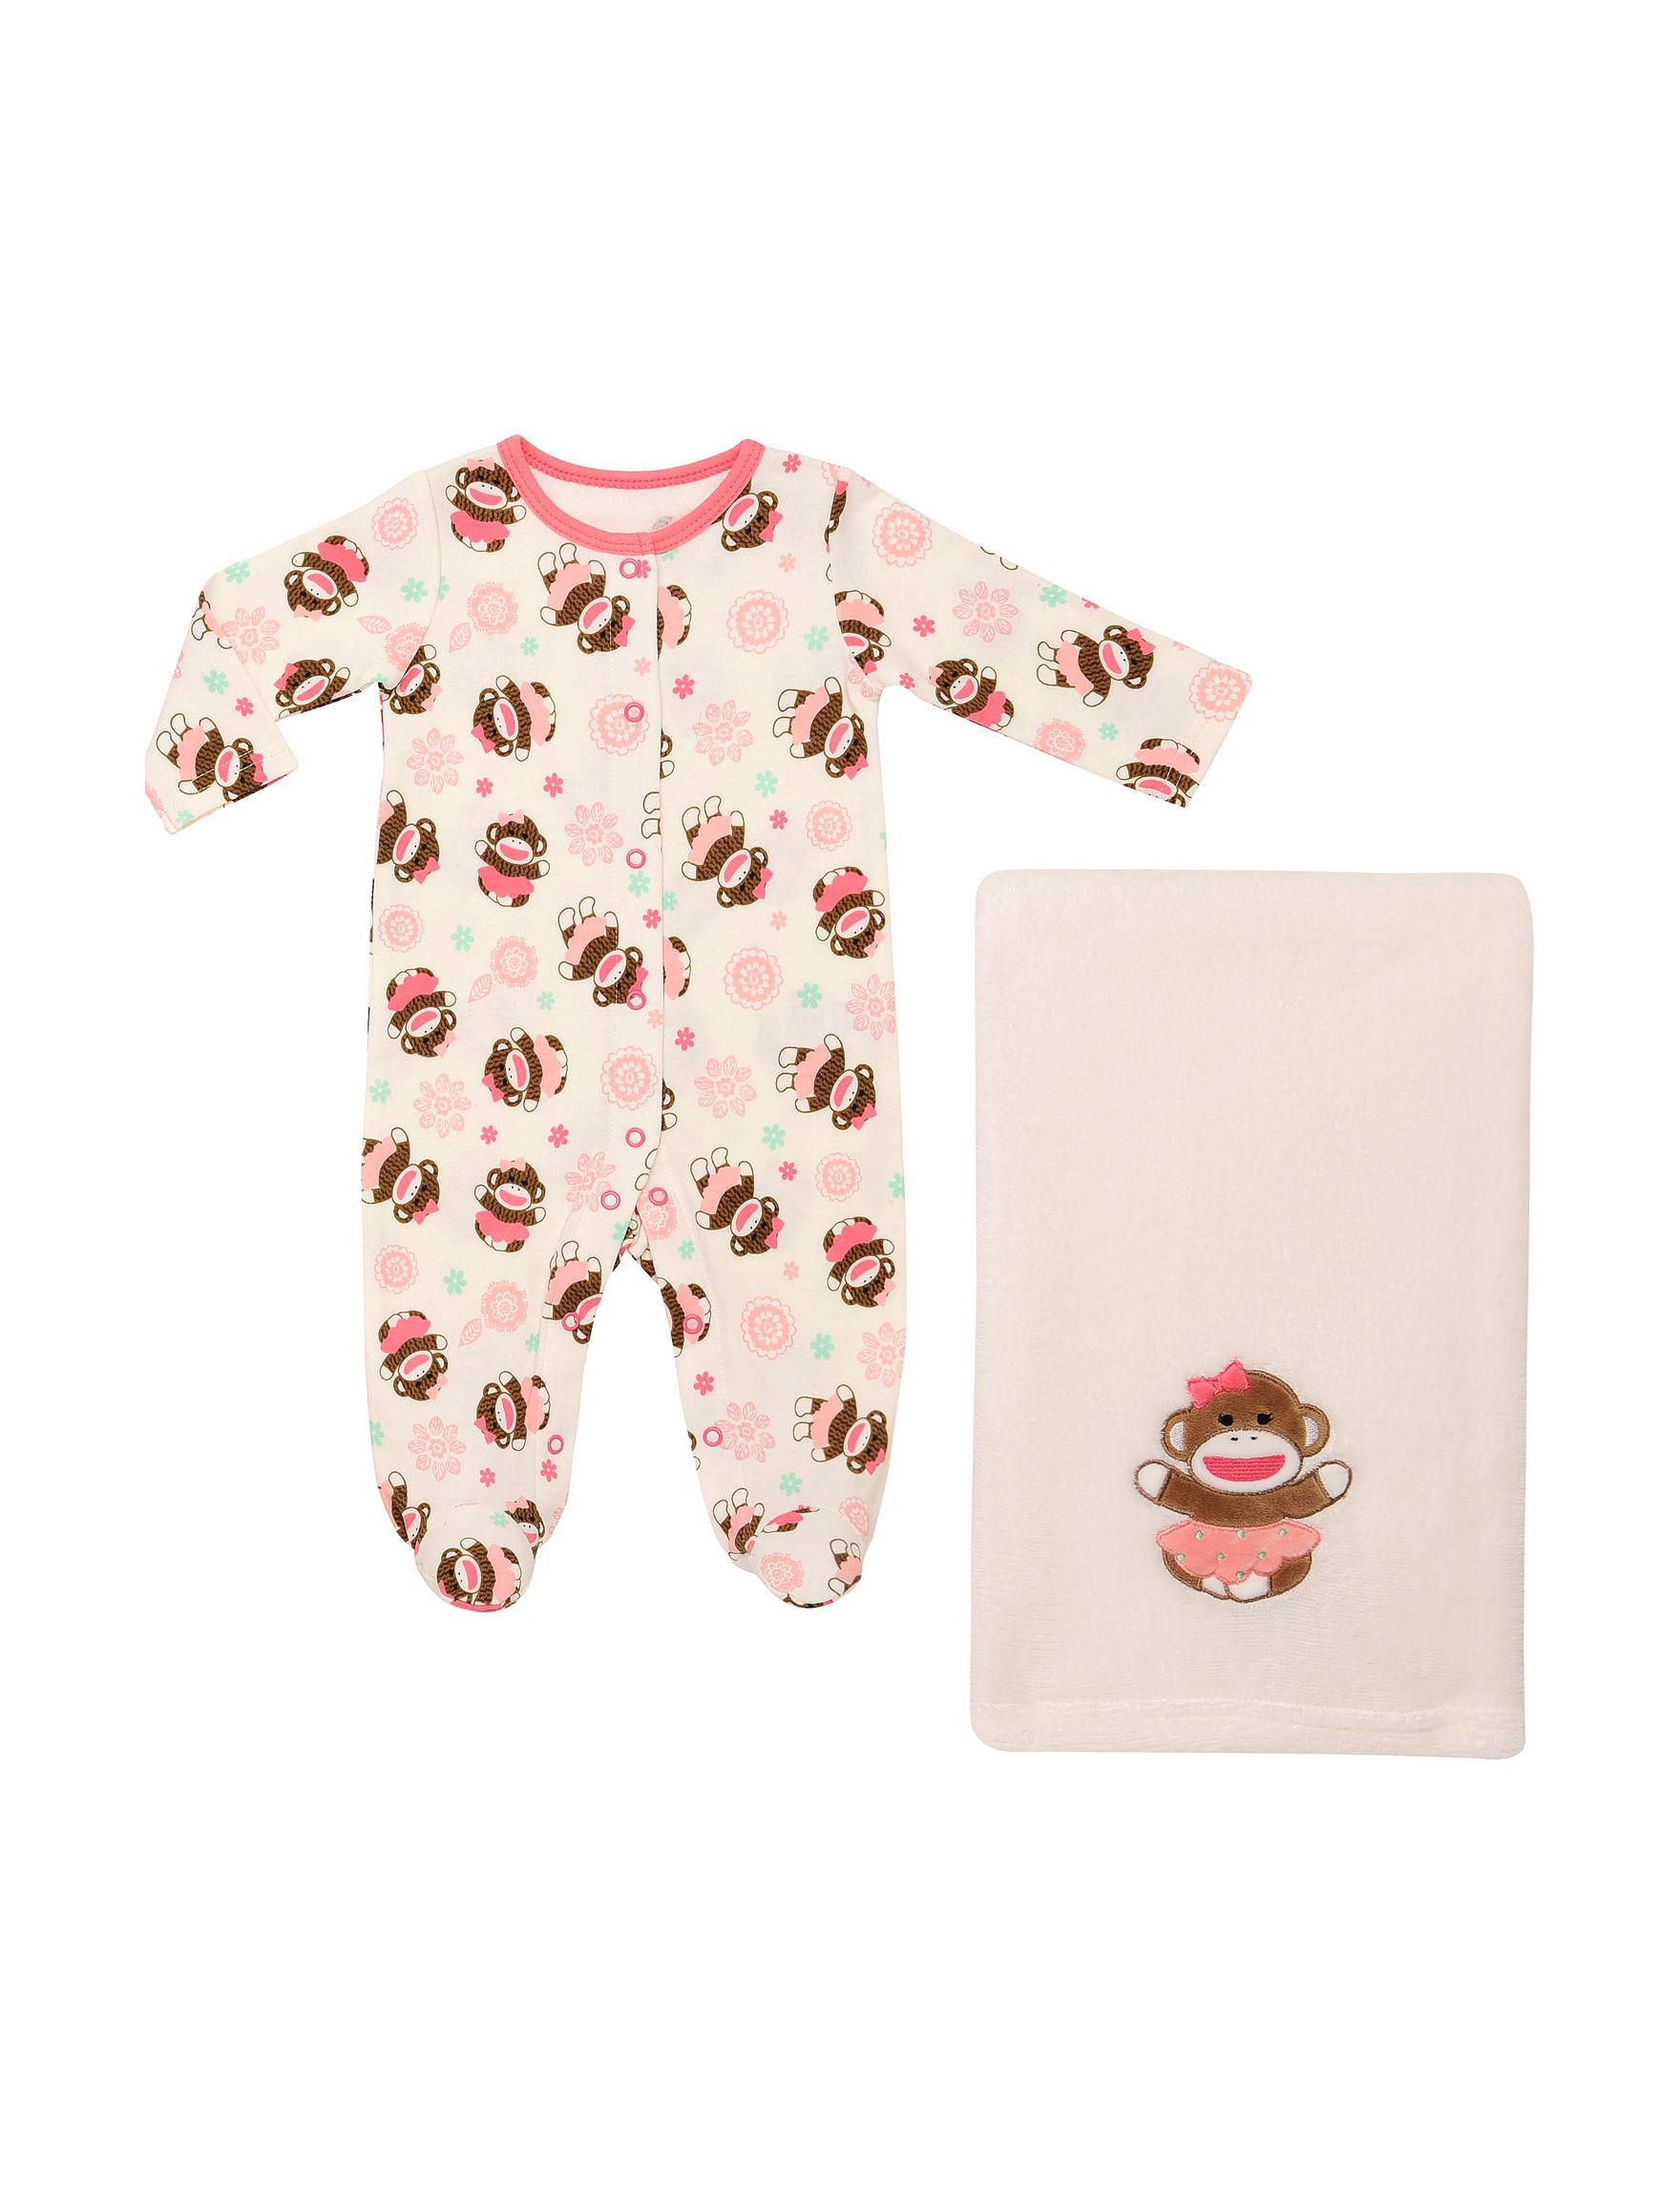 Baby Starters Pink / Ivory